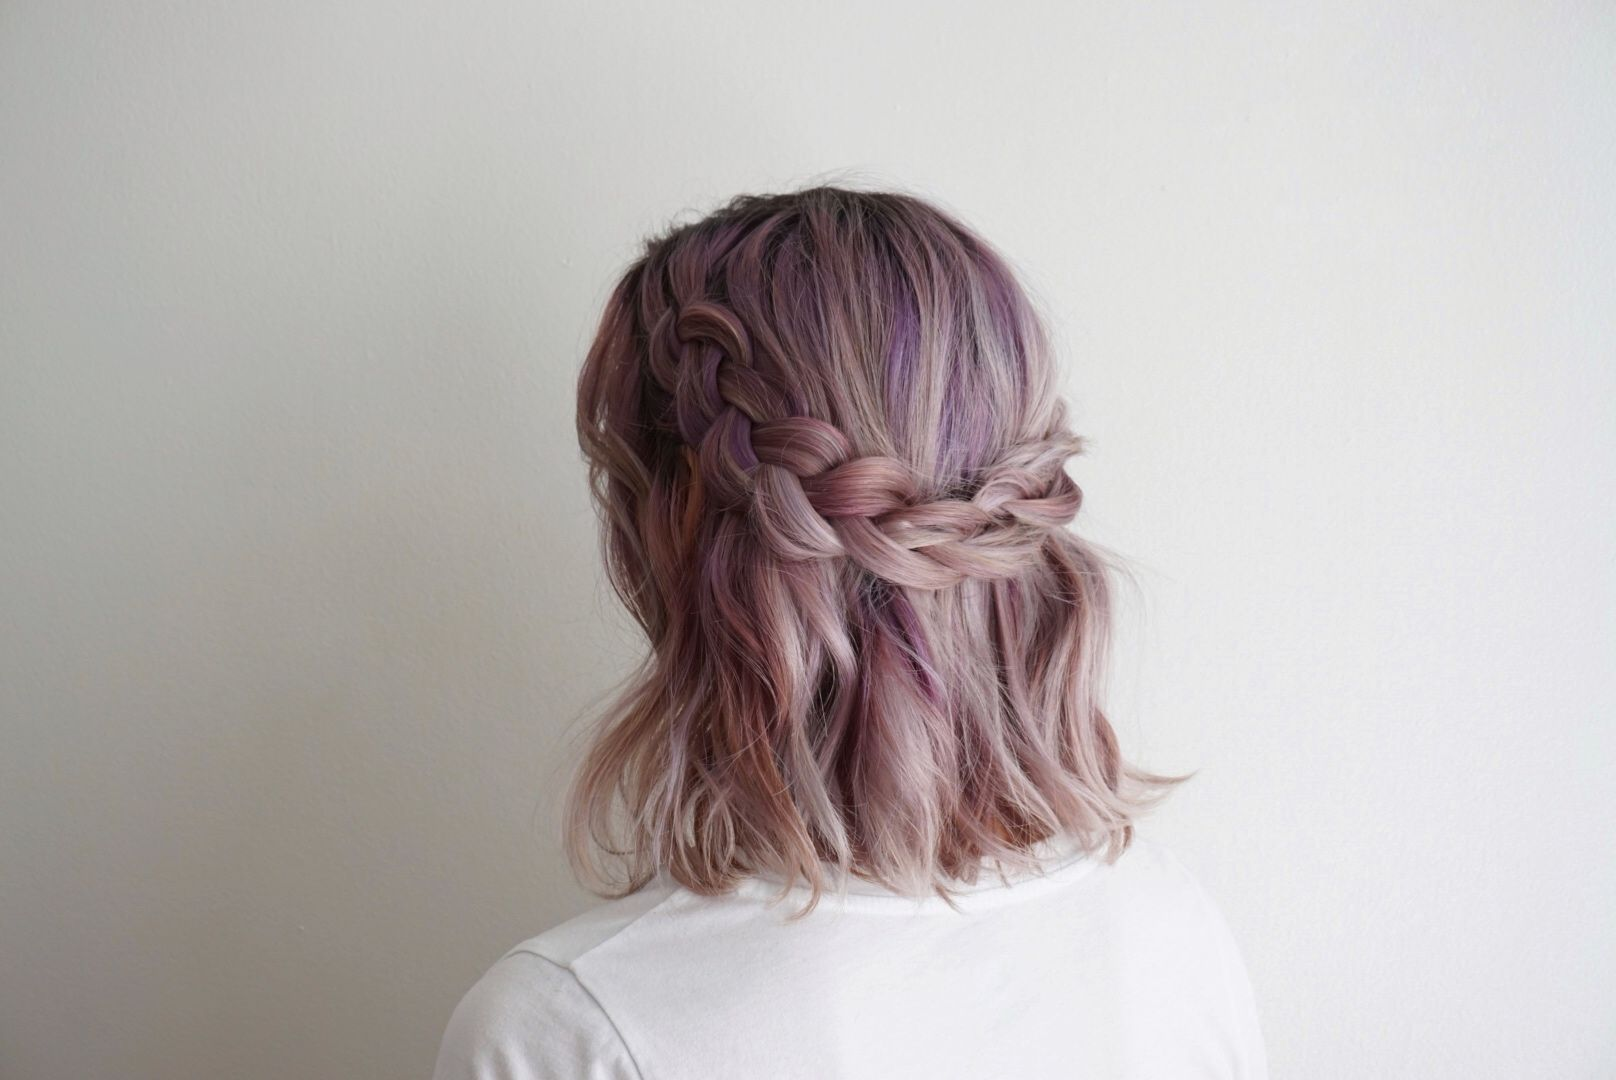 Half up braid hairstyles h a i r pinterest braid hairstyles